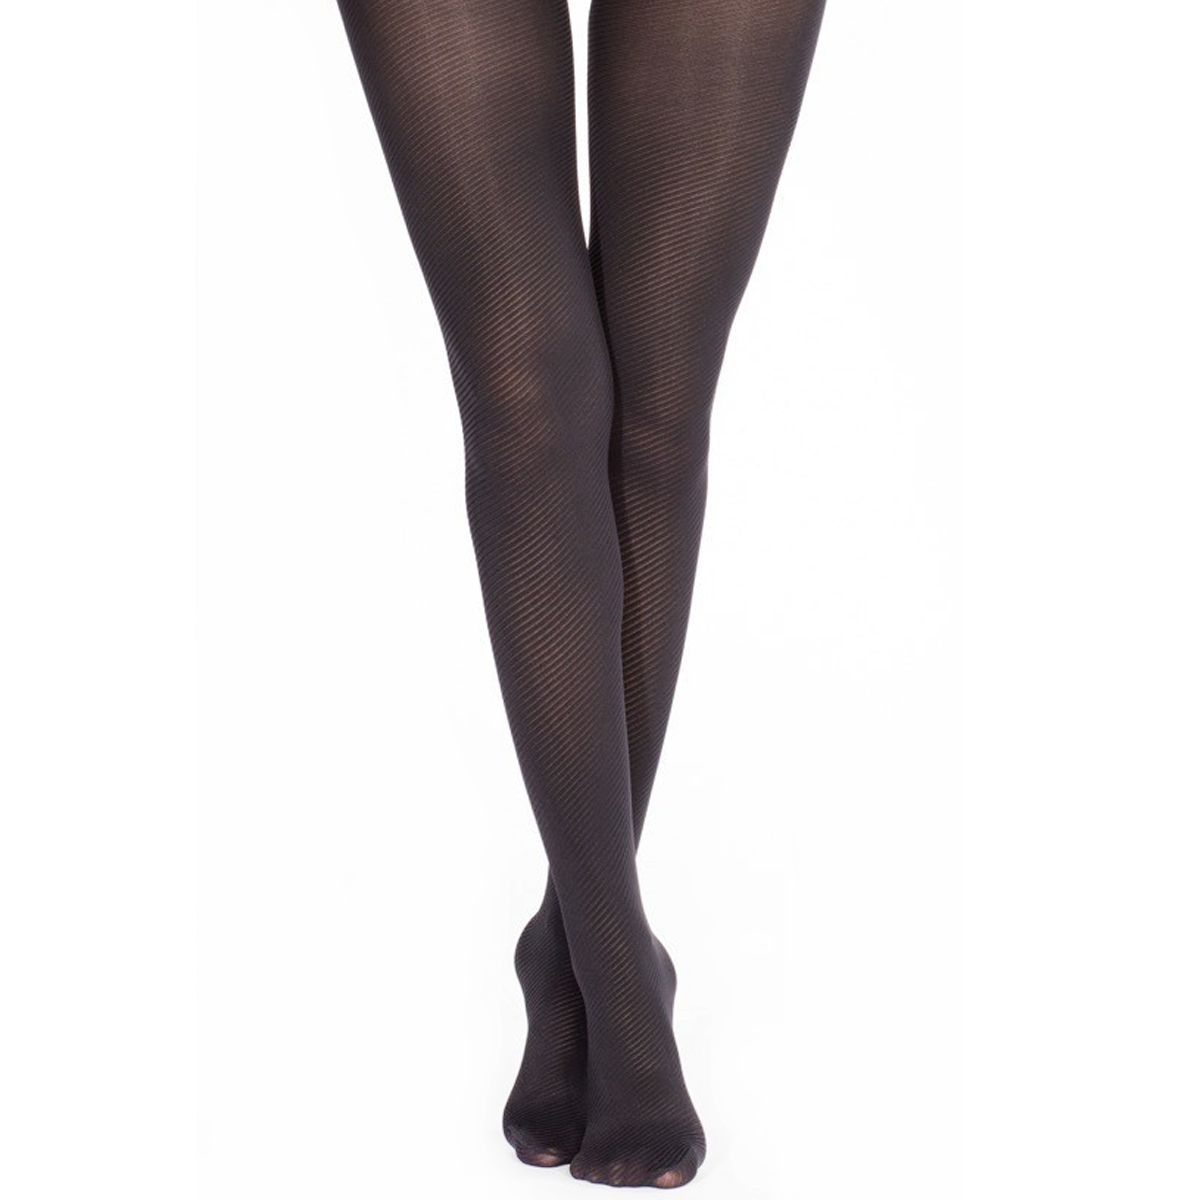 Collants semi-opaques noirs à rayures